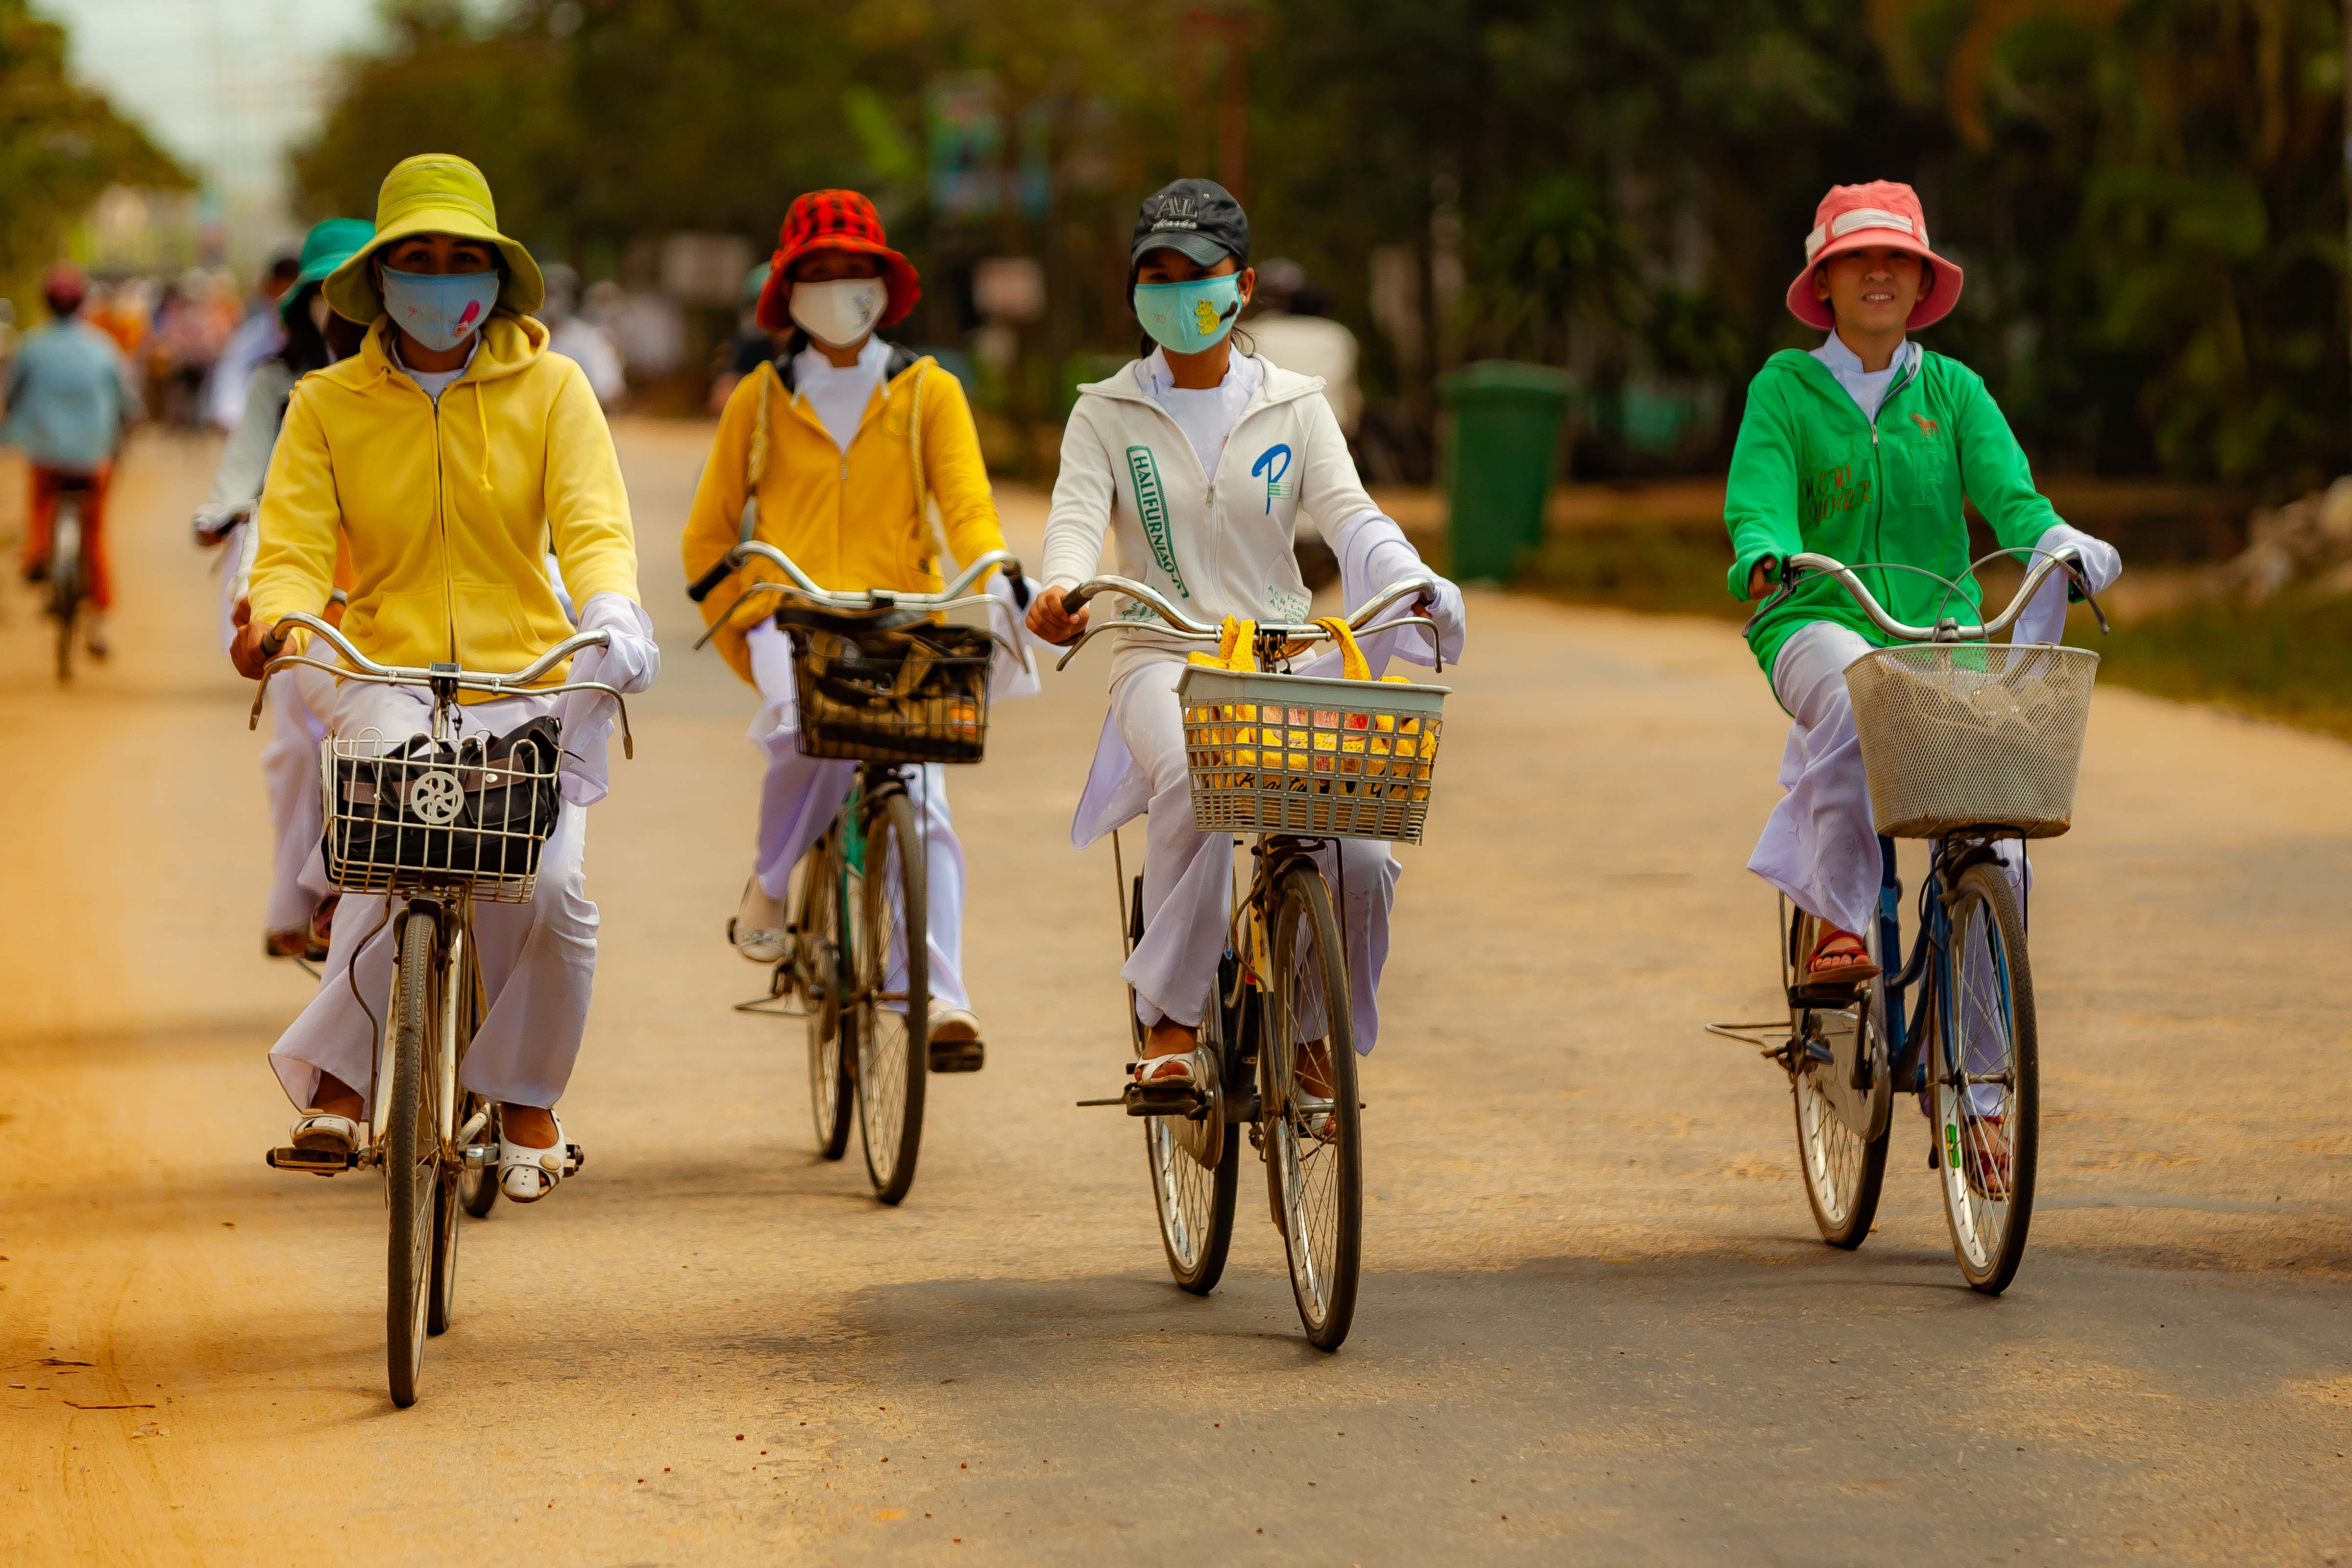 Vietnam, Quang Ngai Prov, Women On Bicycles, 2010, IMG 2578